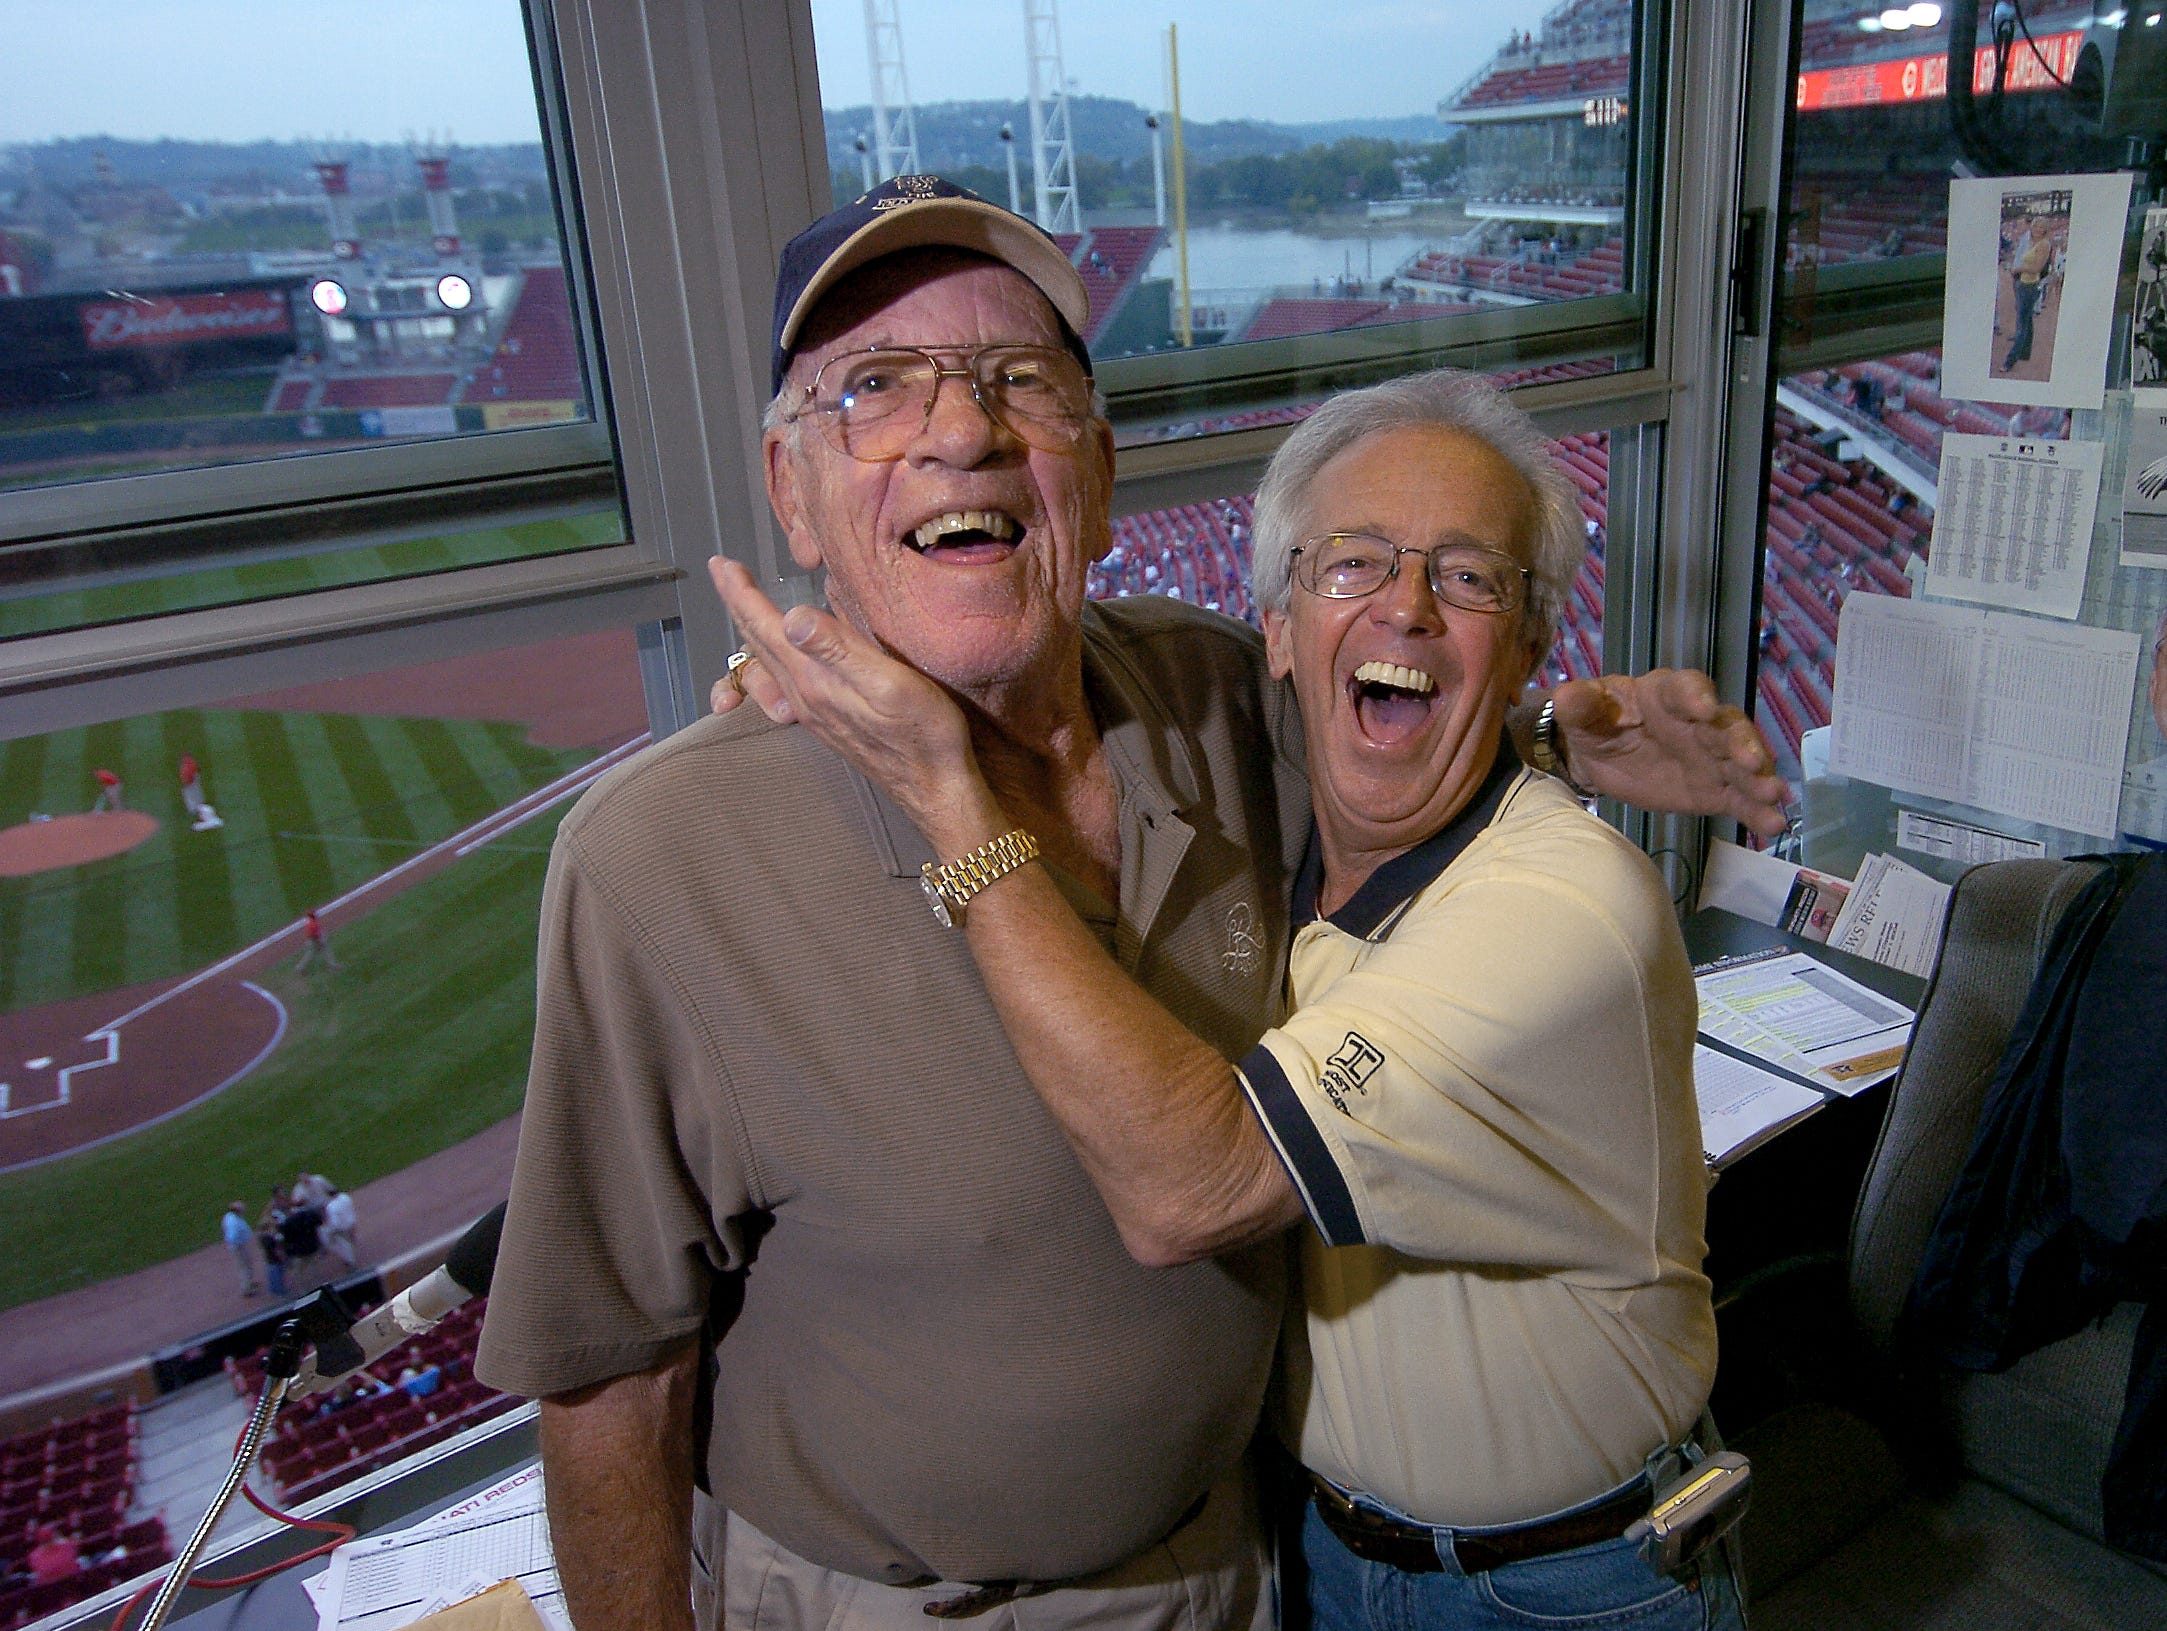 FRIDAY OCTOBER 1, 2004  NUXHALL   SPORTS Joe Nuxhall (left) and Marty Brennaman in the WLW radio booth at the Great American Ball Park prior to the start of the Reds/Pirates game.  Nuxhall is playing out his last homestand as a fulltime Reds announcer and decades-old partner to Mary Brennaman.